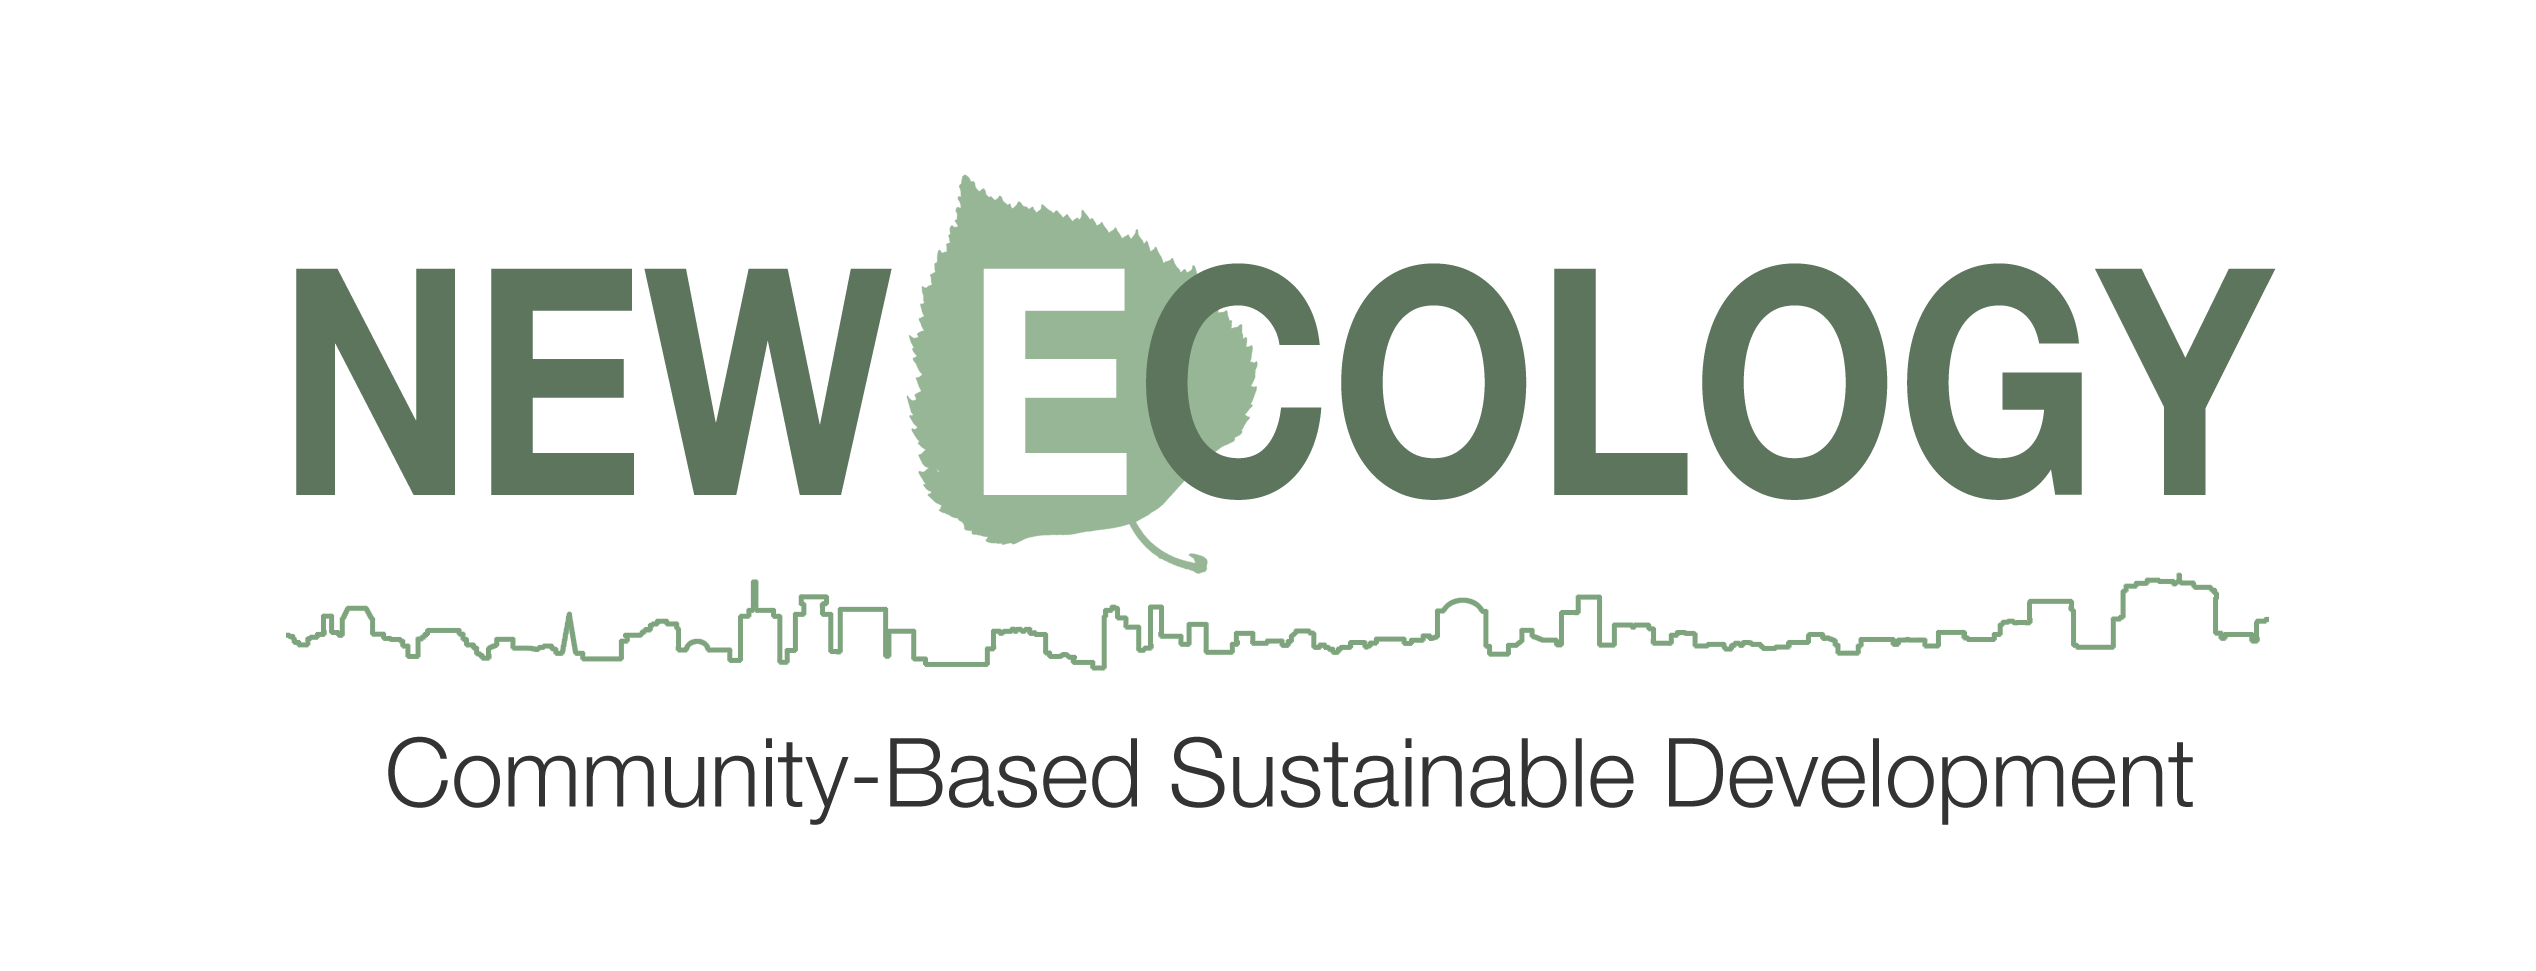 New Ecology, Inc.